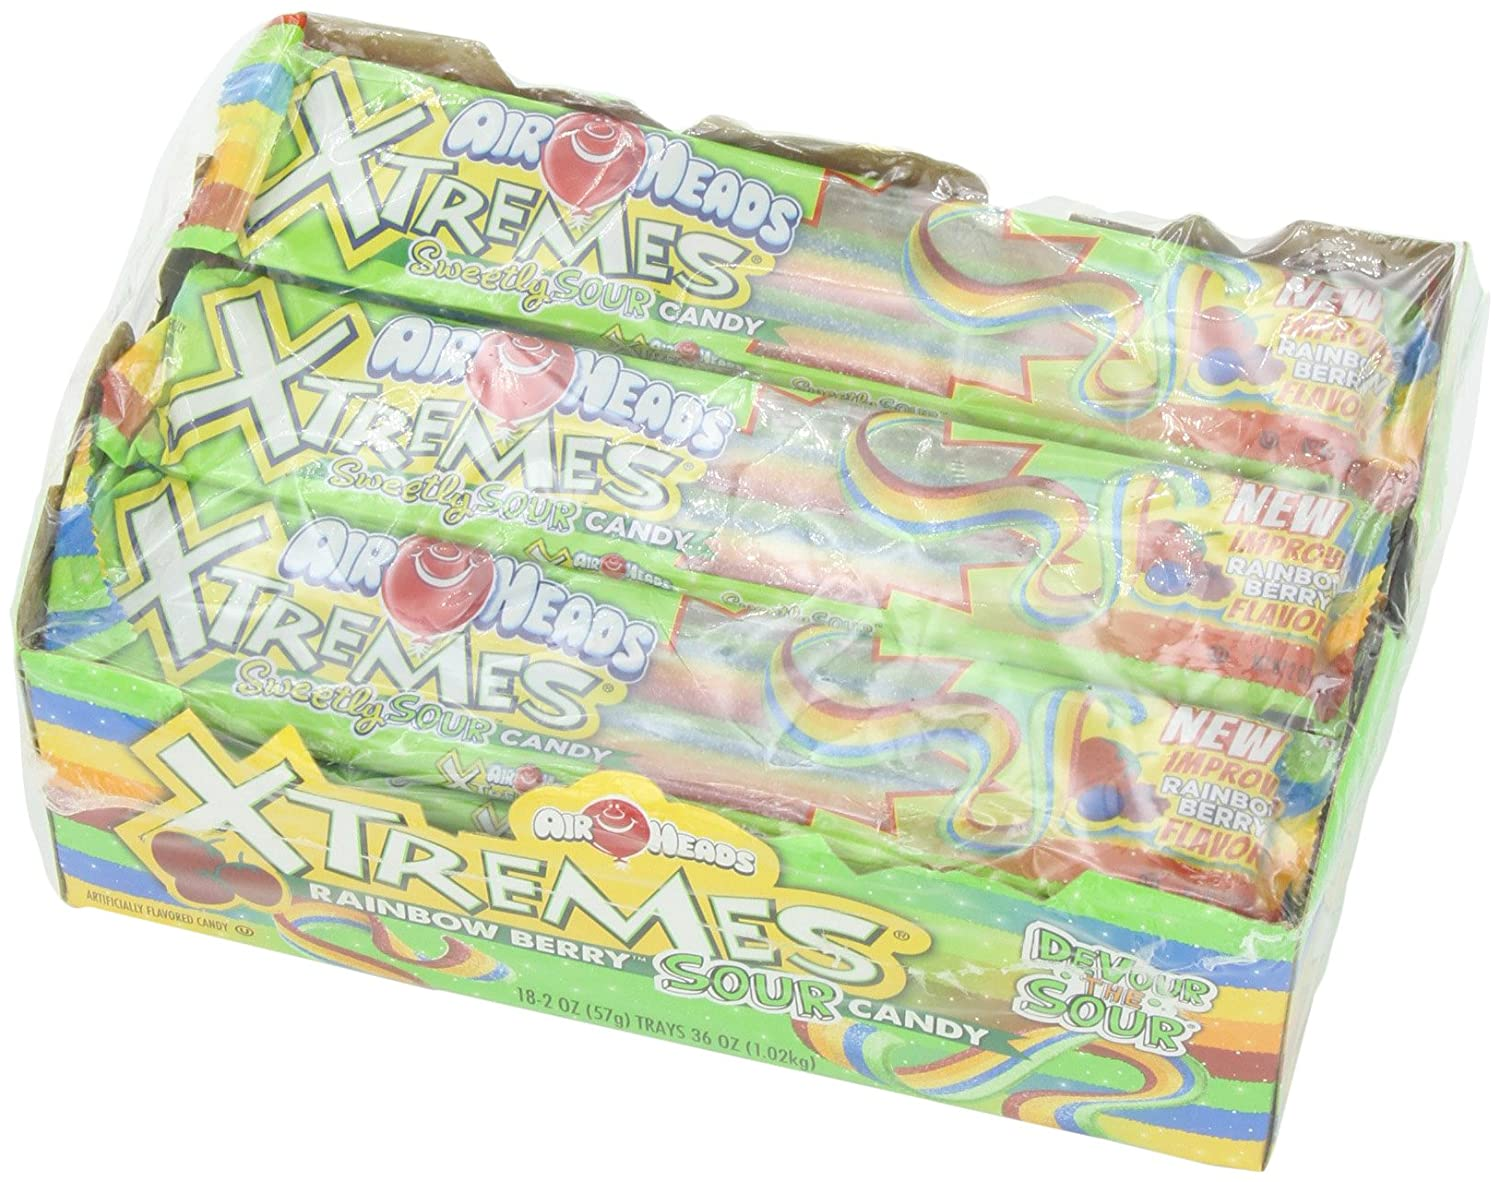 Airheads Xtreme Sour Belts Candy 36oz